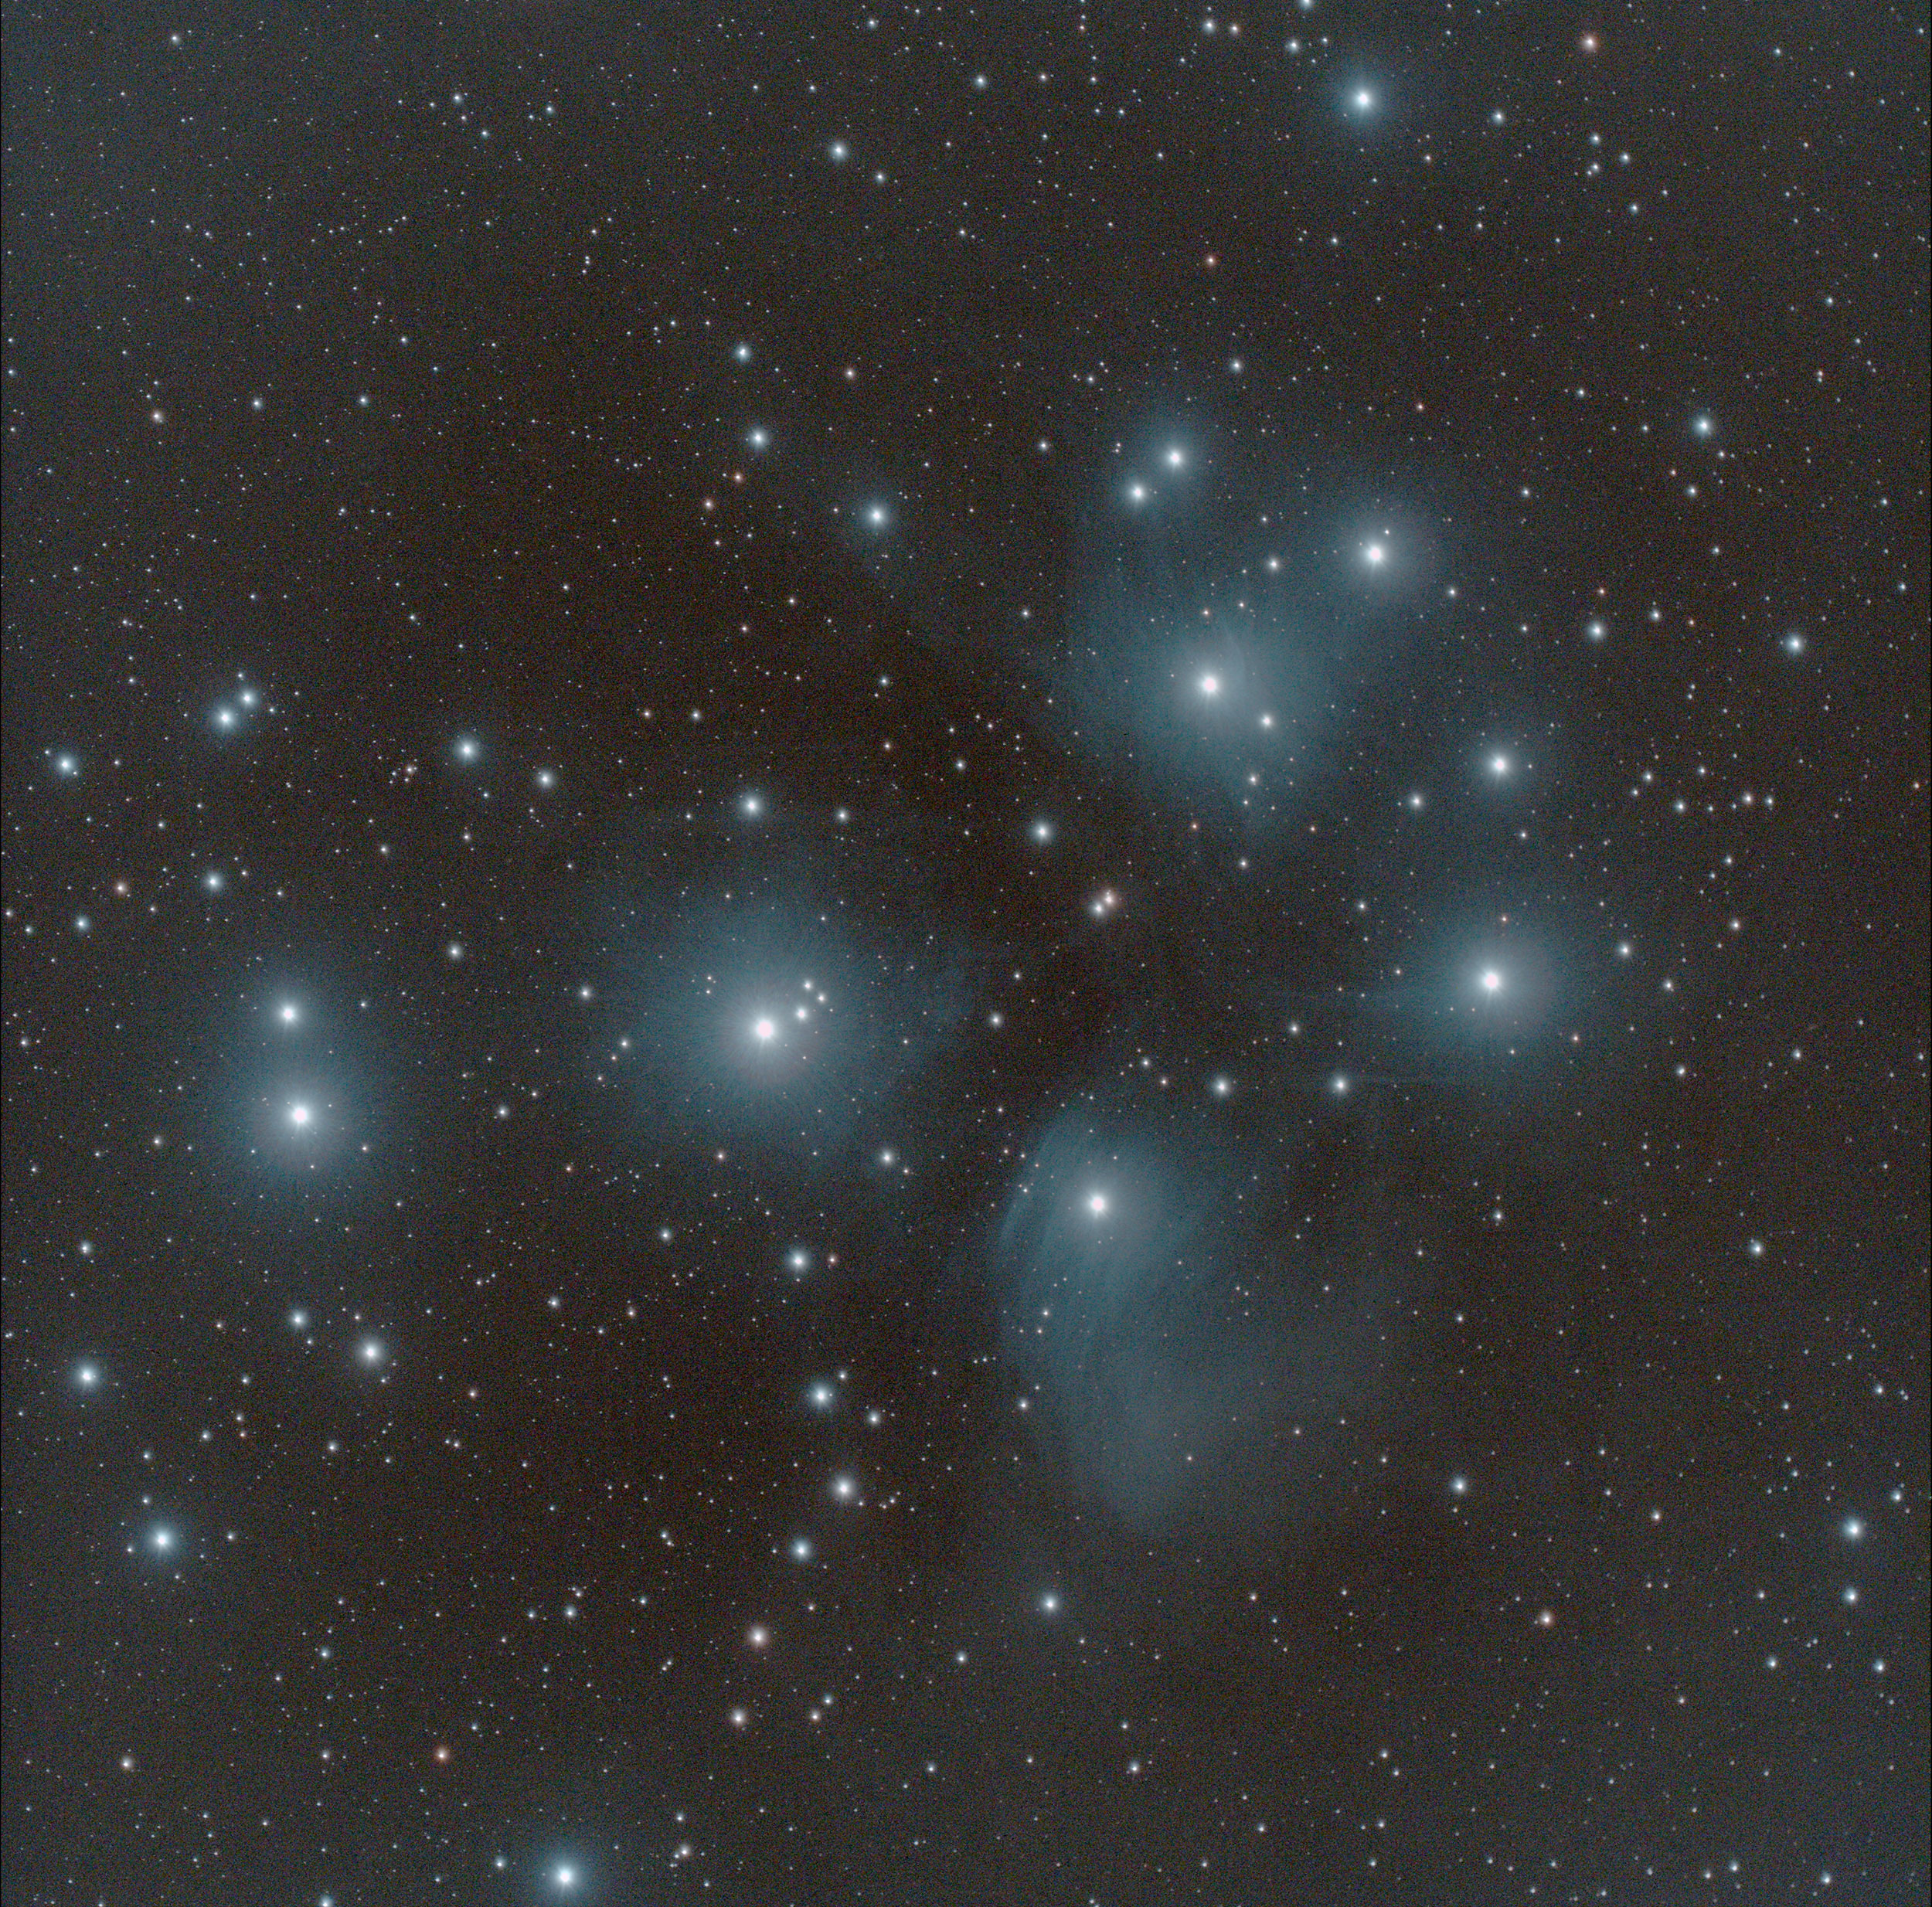 M45 the Pleiades, an Open Cluster visible to the naked eye. Credit: Mike Barrett